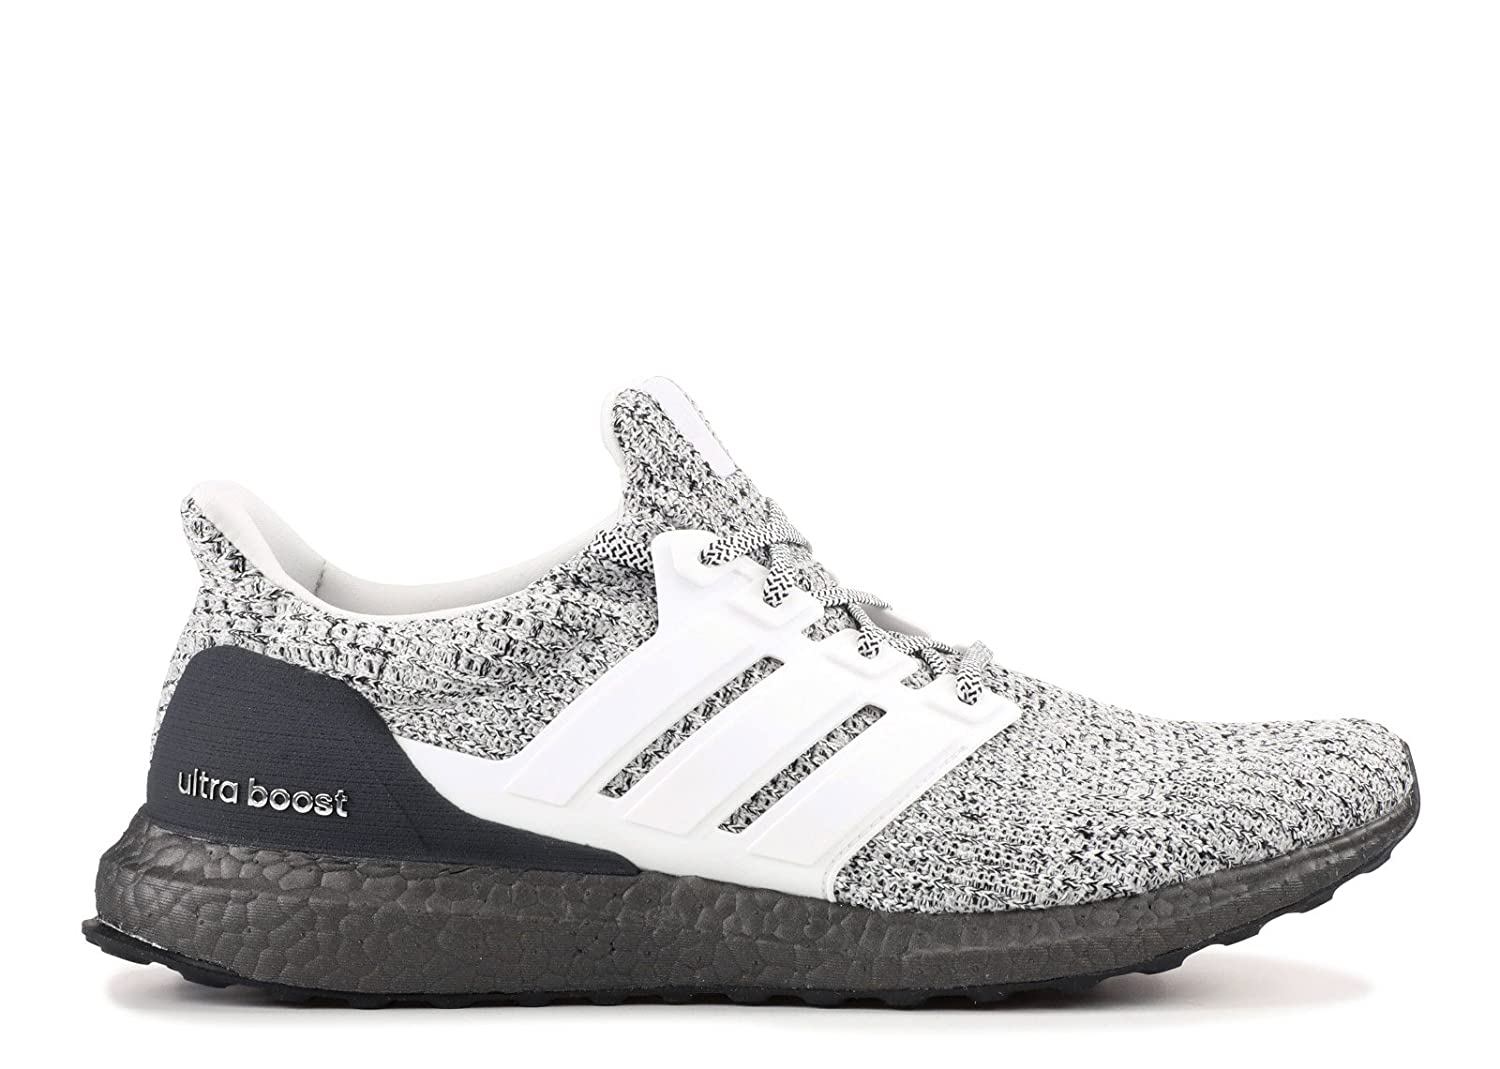 timeless design d9fad d98e6 Amazon.com   adidas Men s Ultraboost   Fashion Sneakers